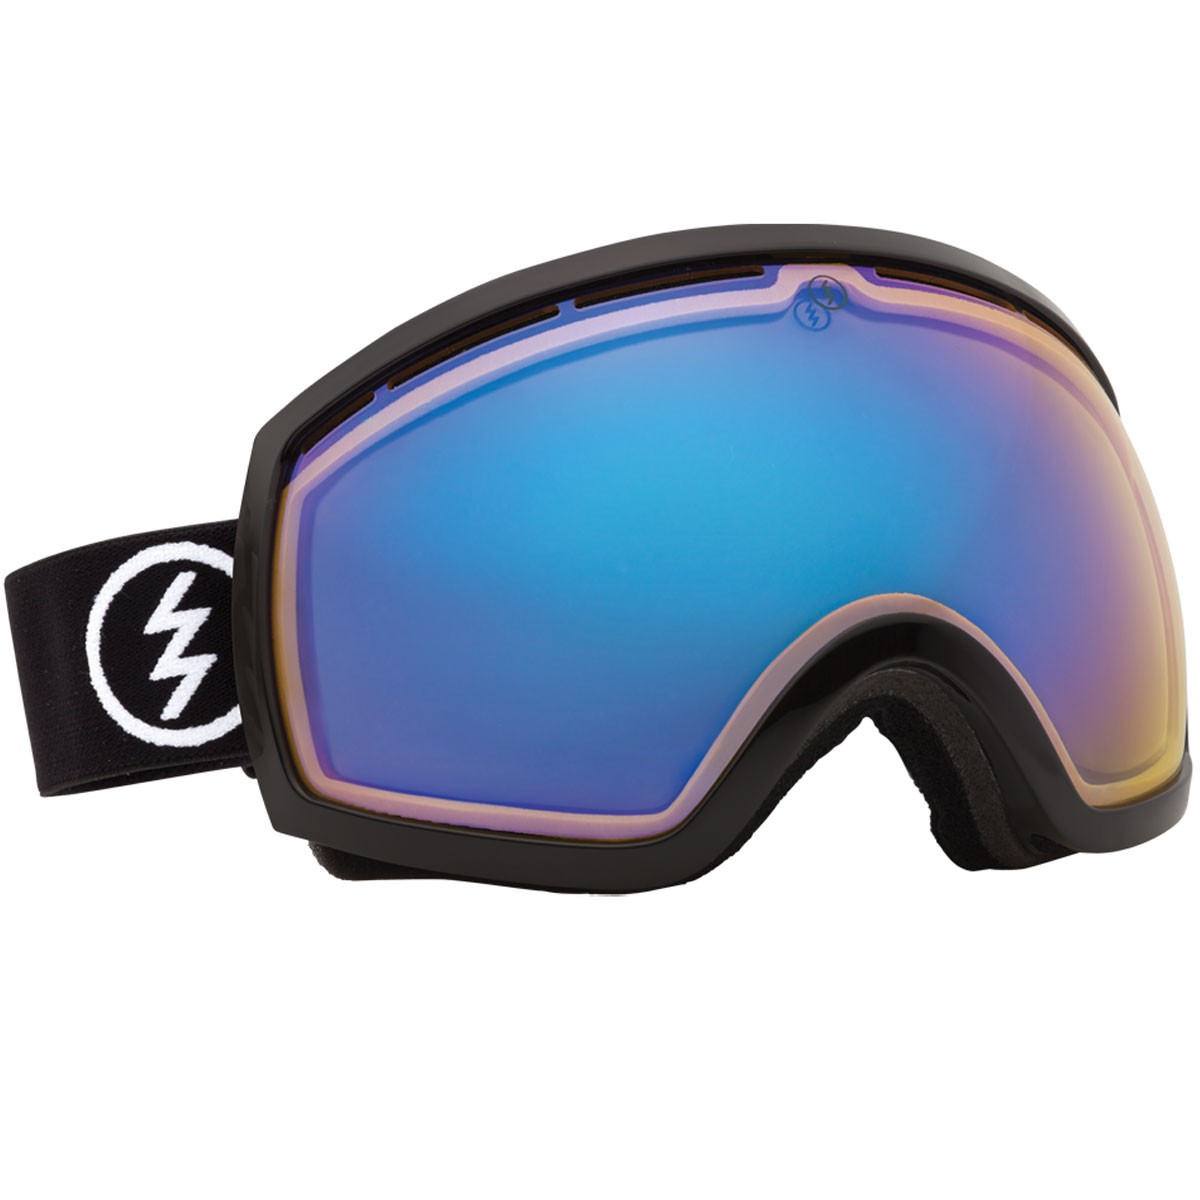 Electric EG2 Snowboard Goggles 2014 - Gloss Black - Yellow / Blue Chrome